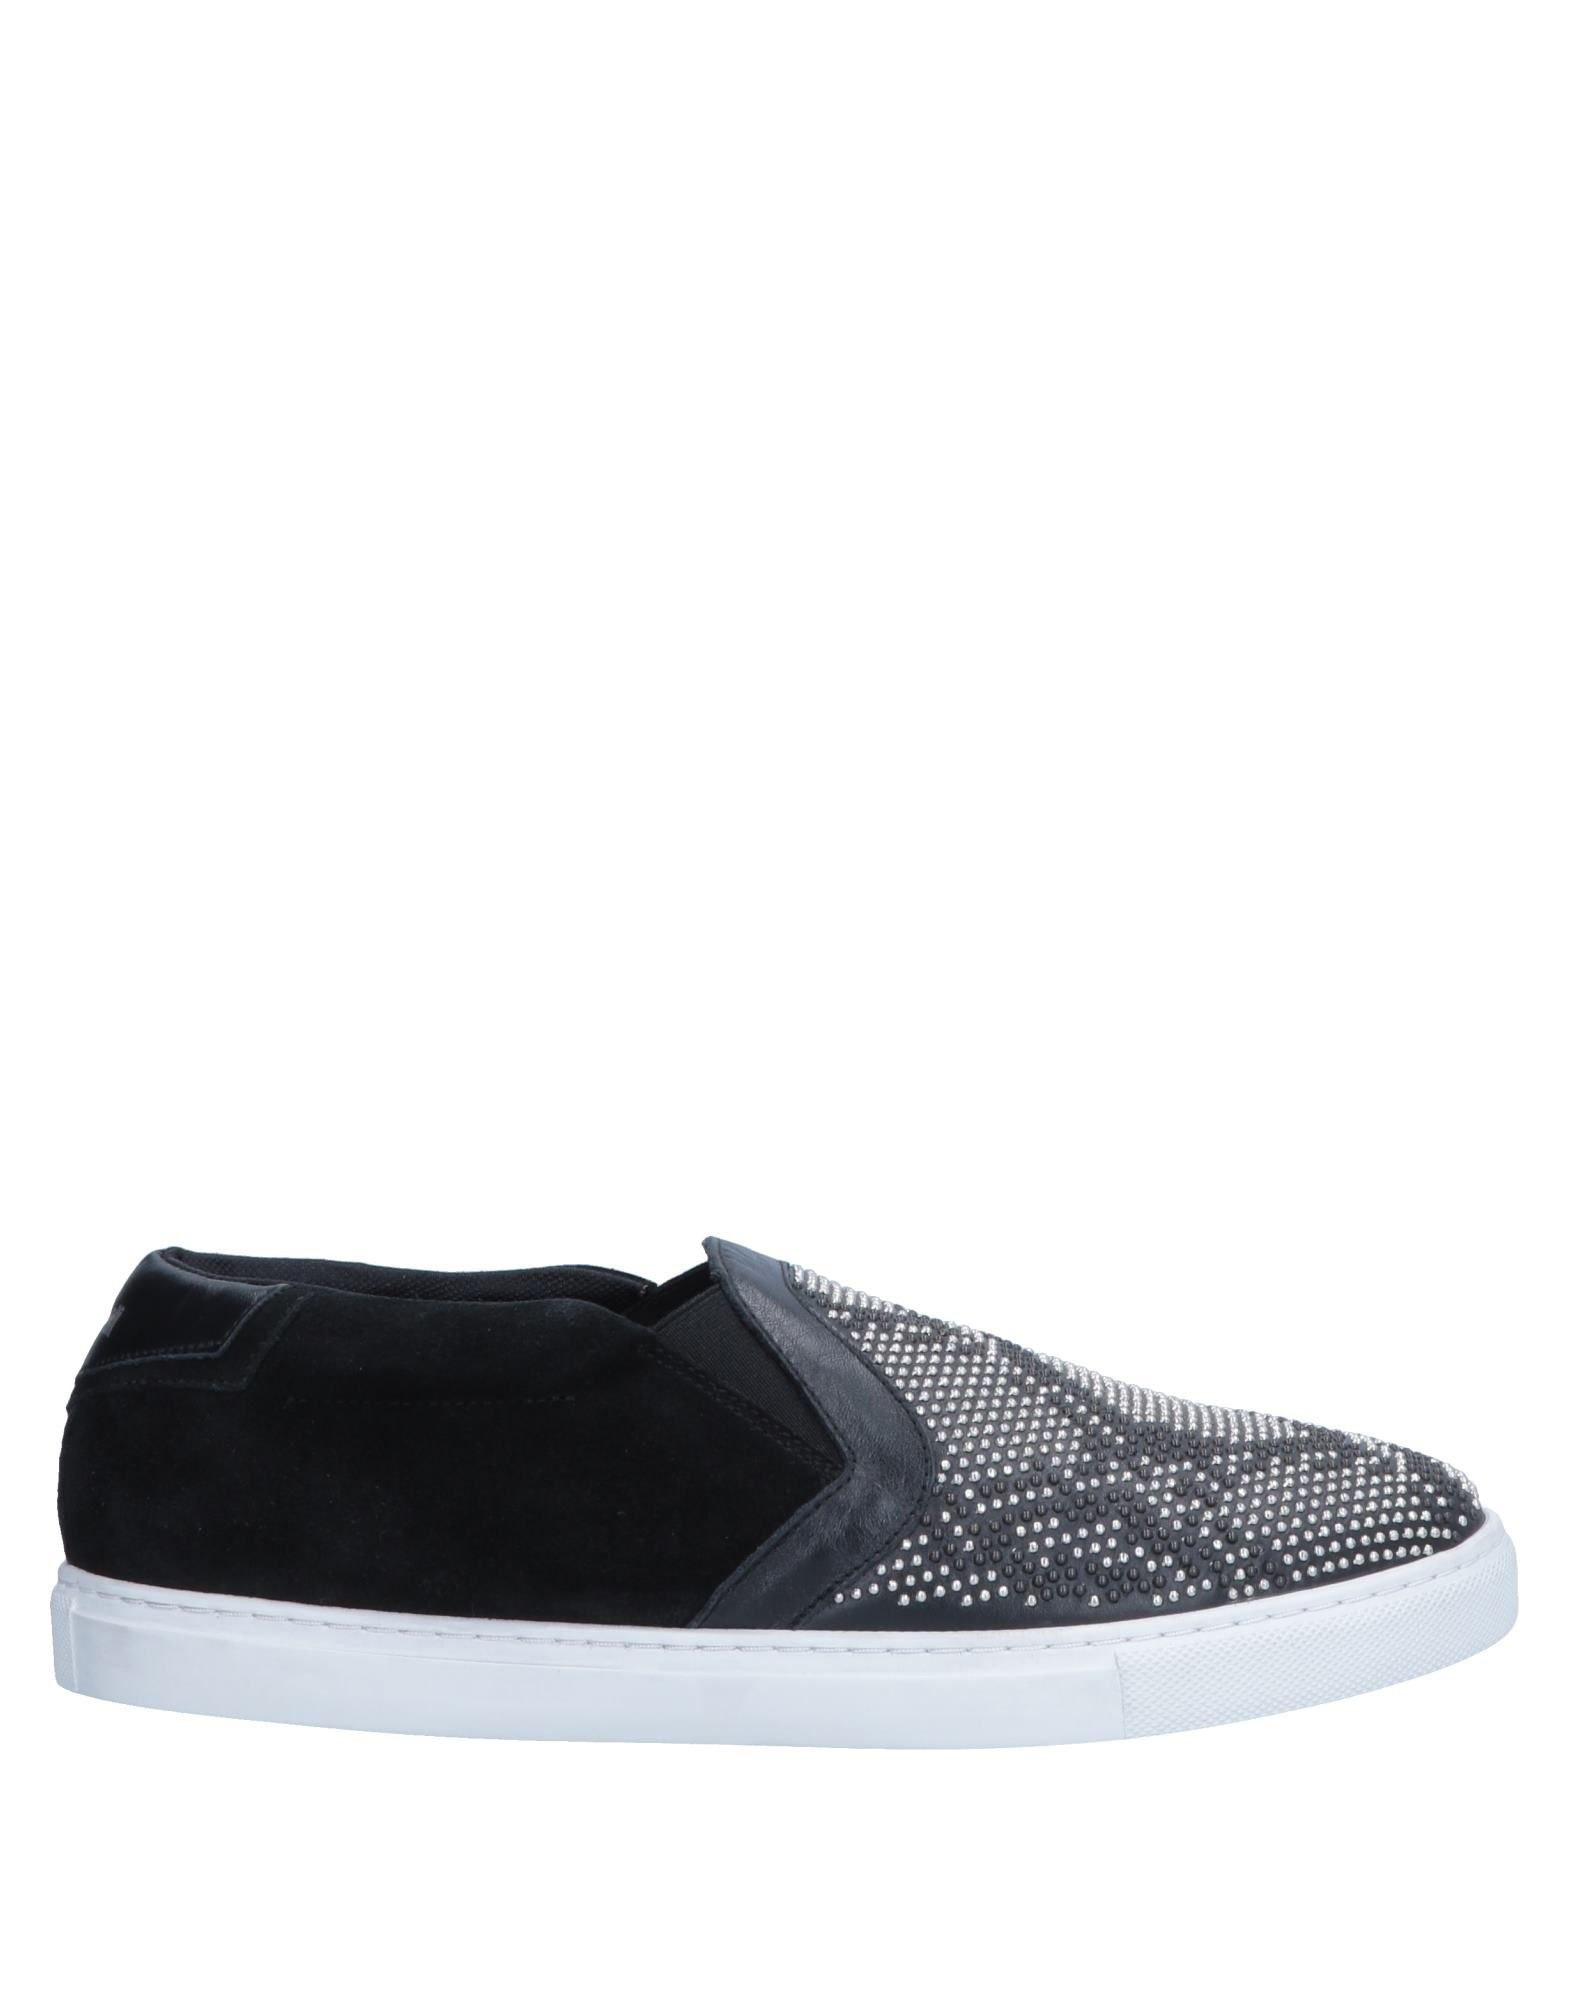 Just Just Just Cavalli Sneakers - Men Just Cavalli Sneakers online on  Canada - 11560598FH 8f28ec